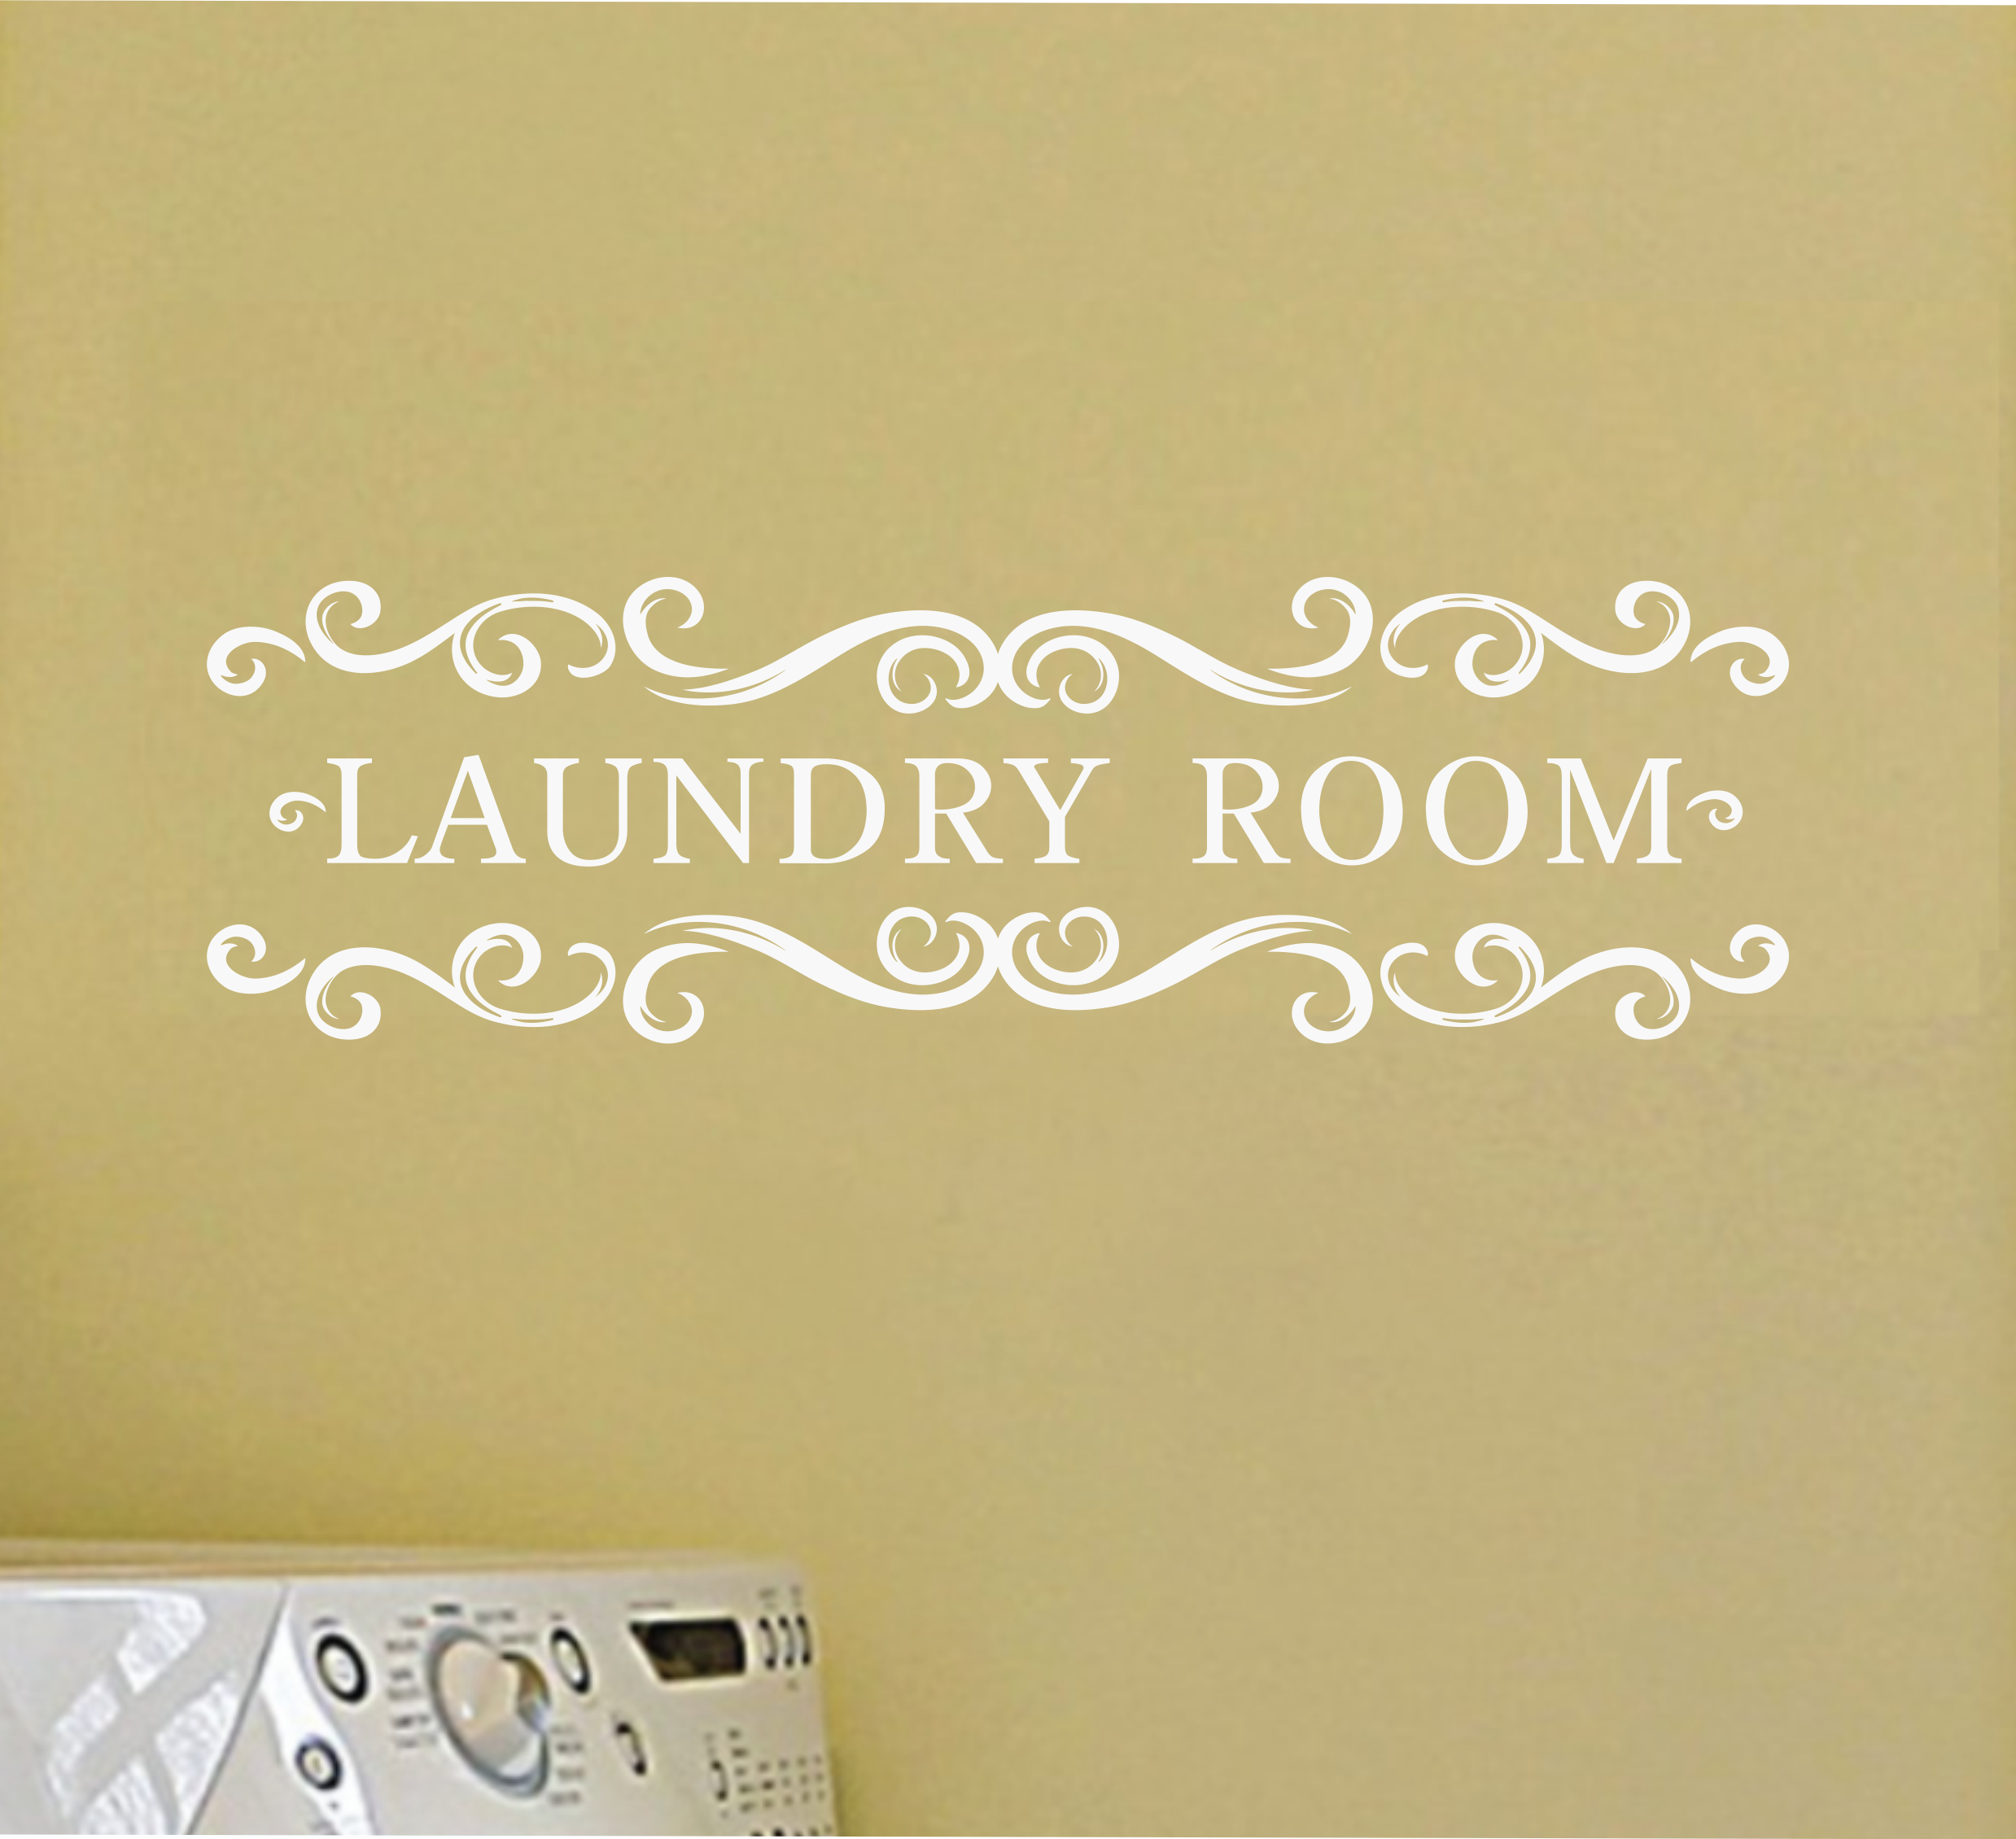 Laundry Room Wall Decal Sold By Decaleverything On Storenvy